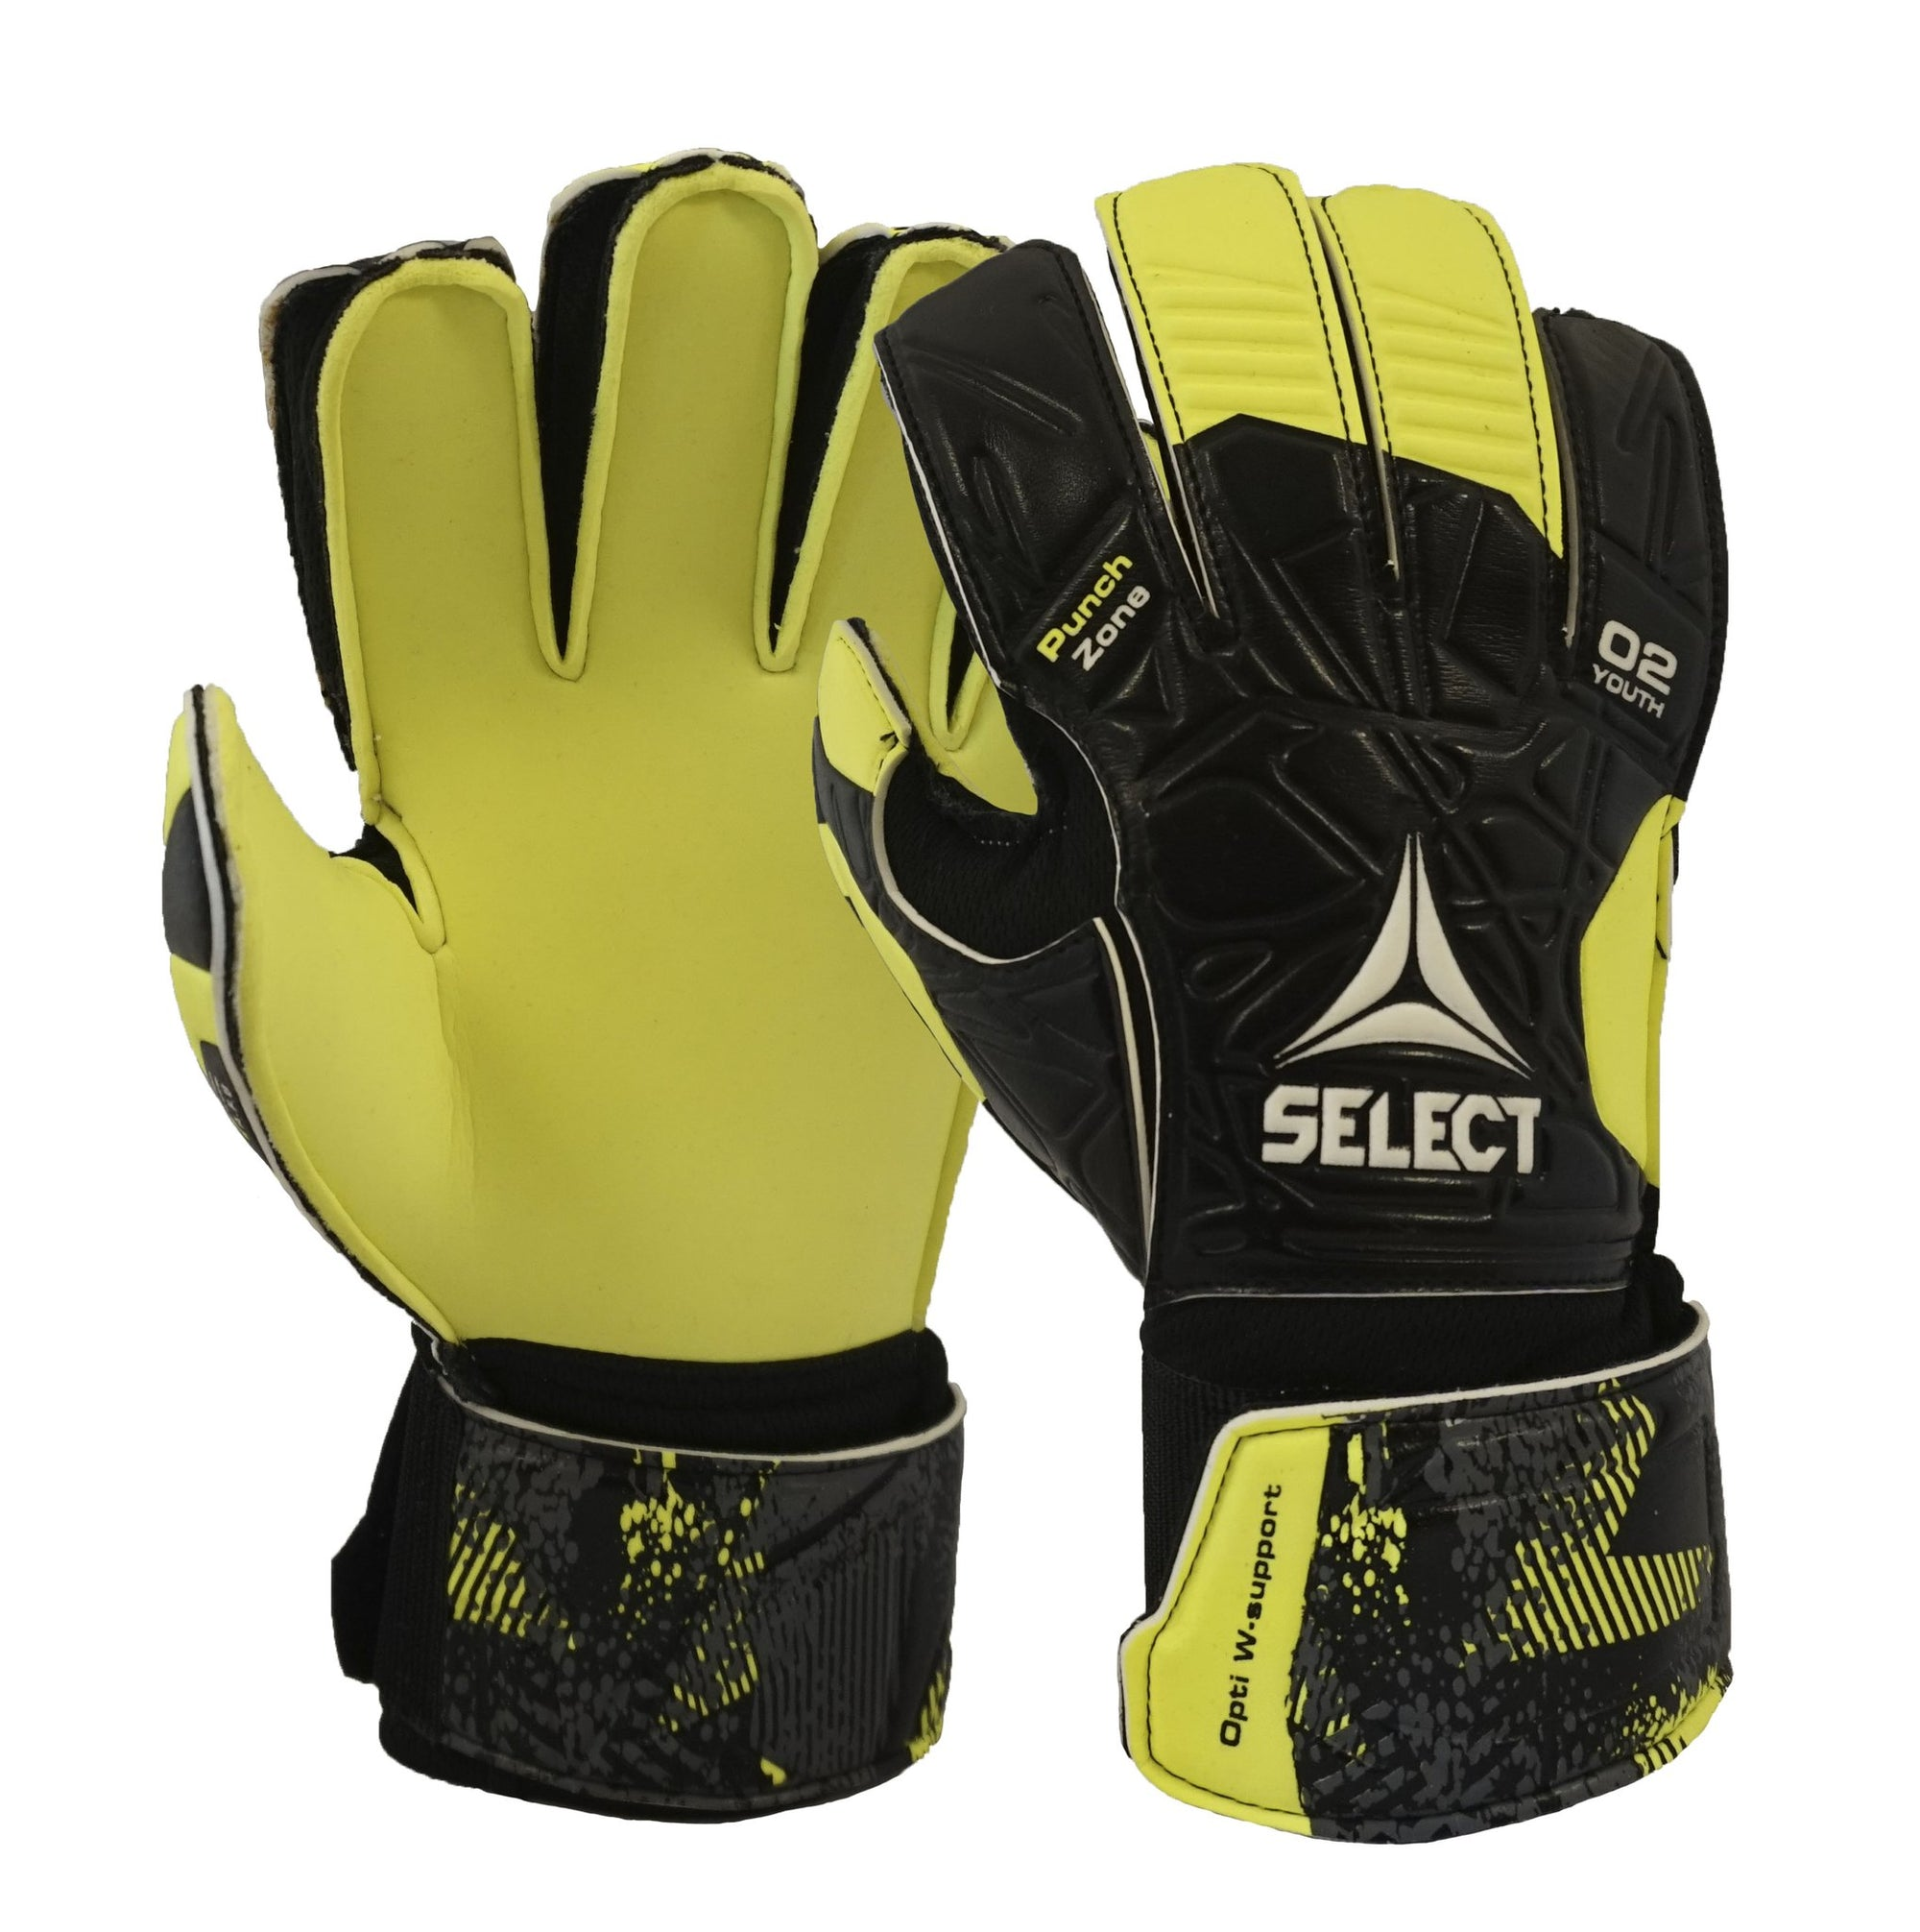 Youth goalkeeper gloves for all year round v20